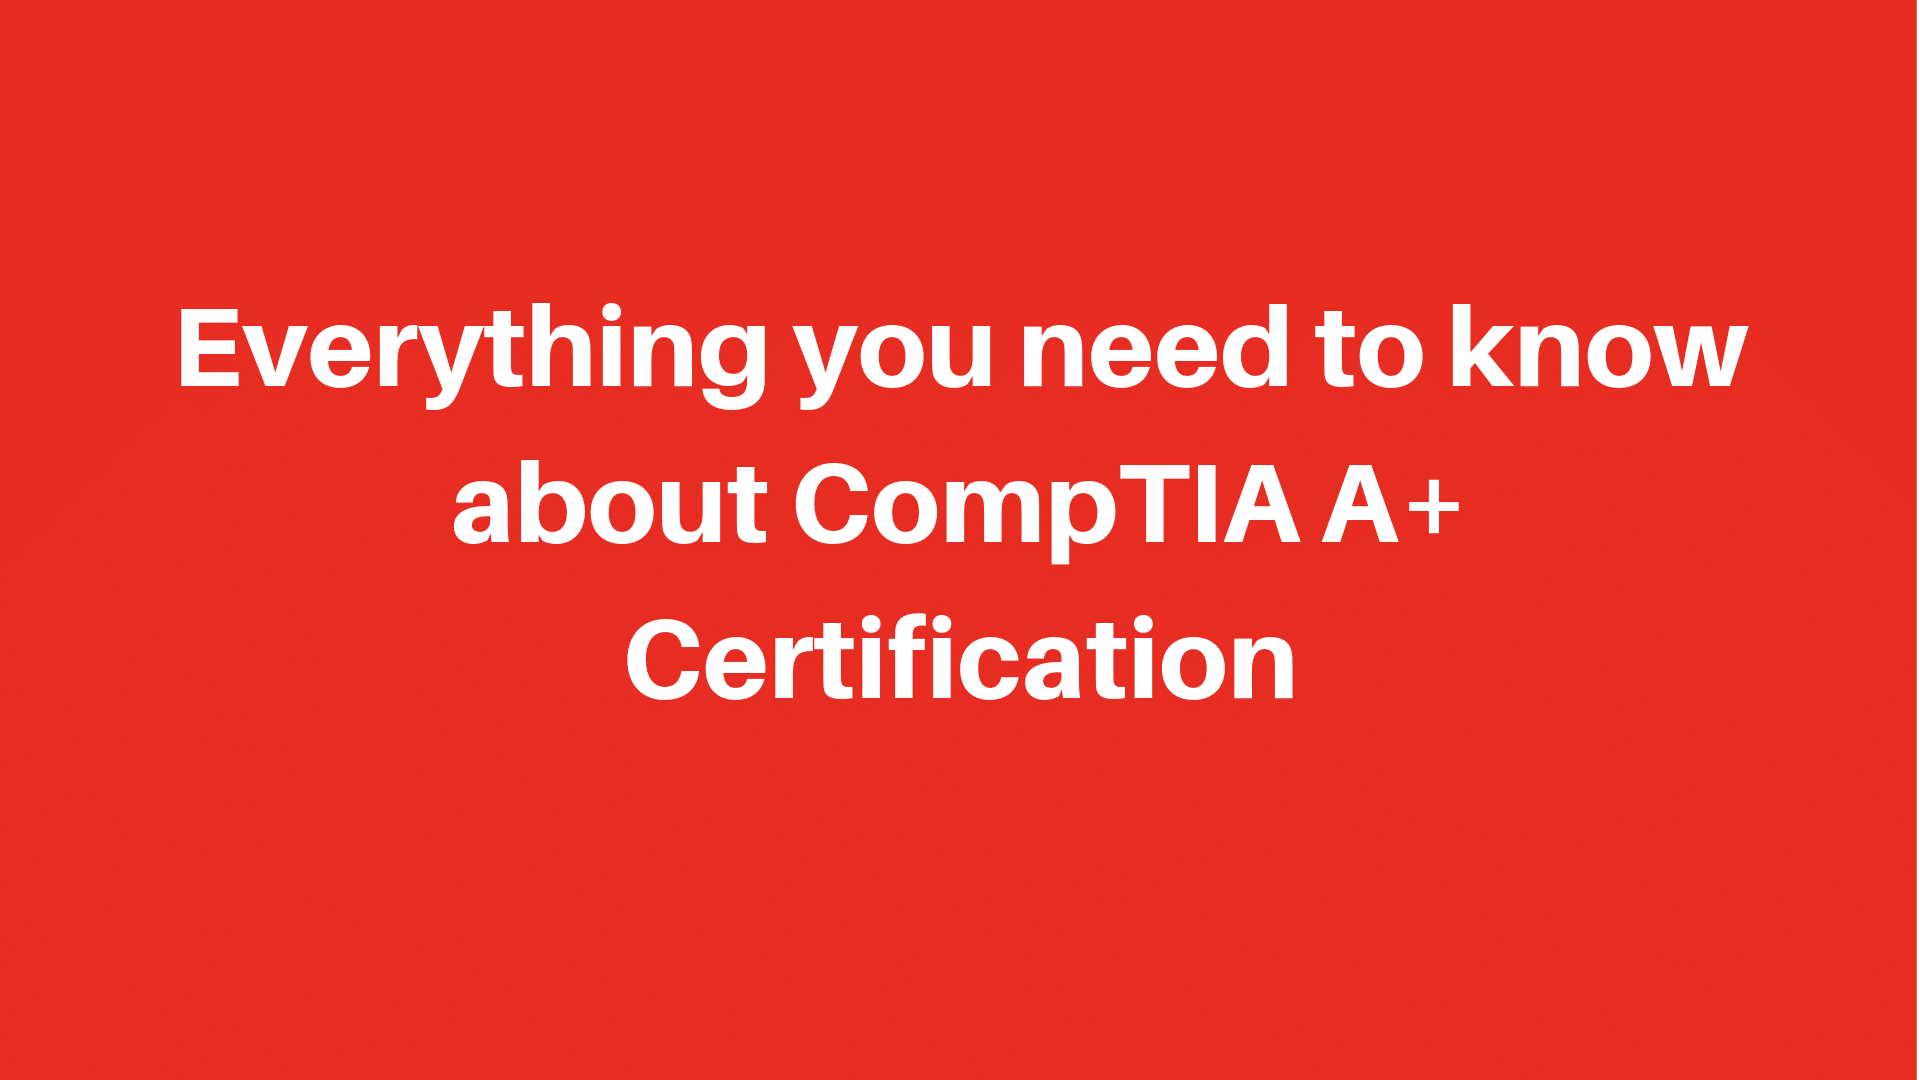 Everything You need to know about CompTIA A+ Certification